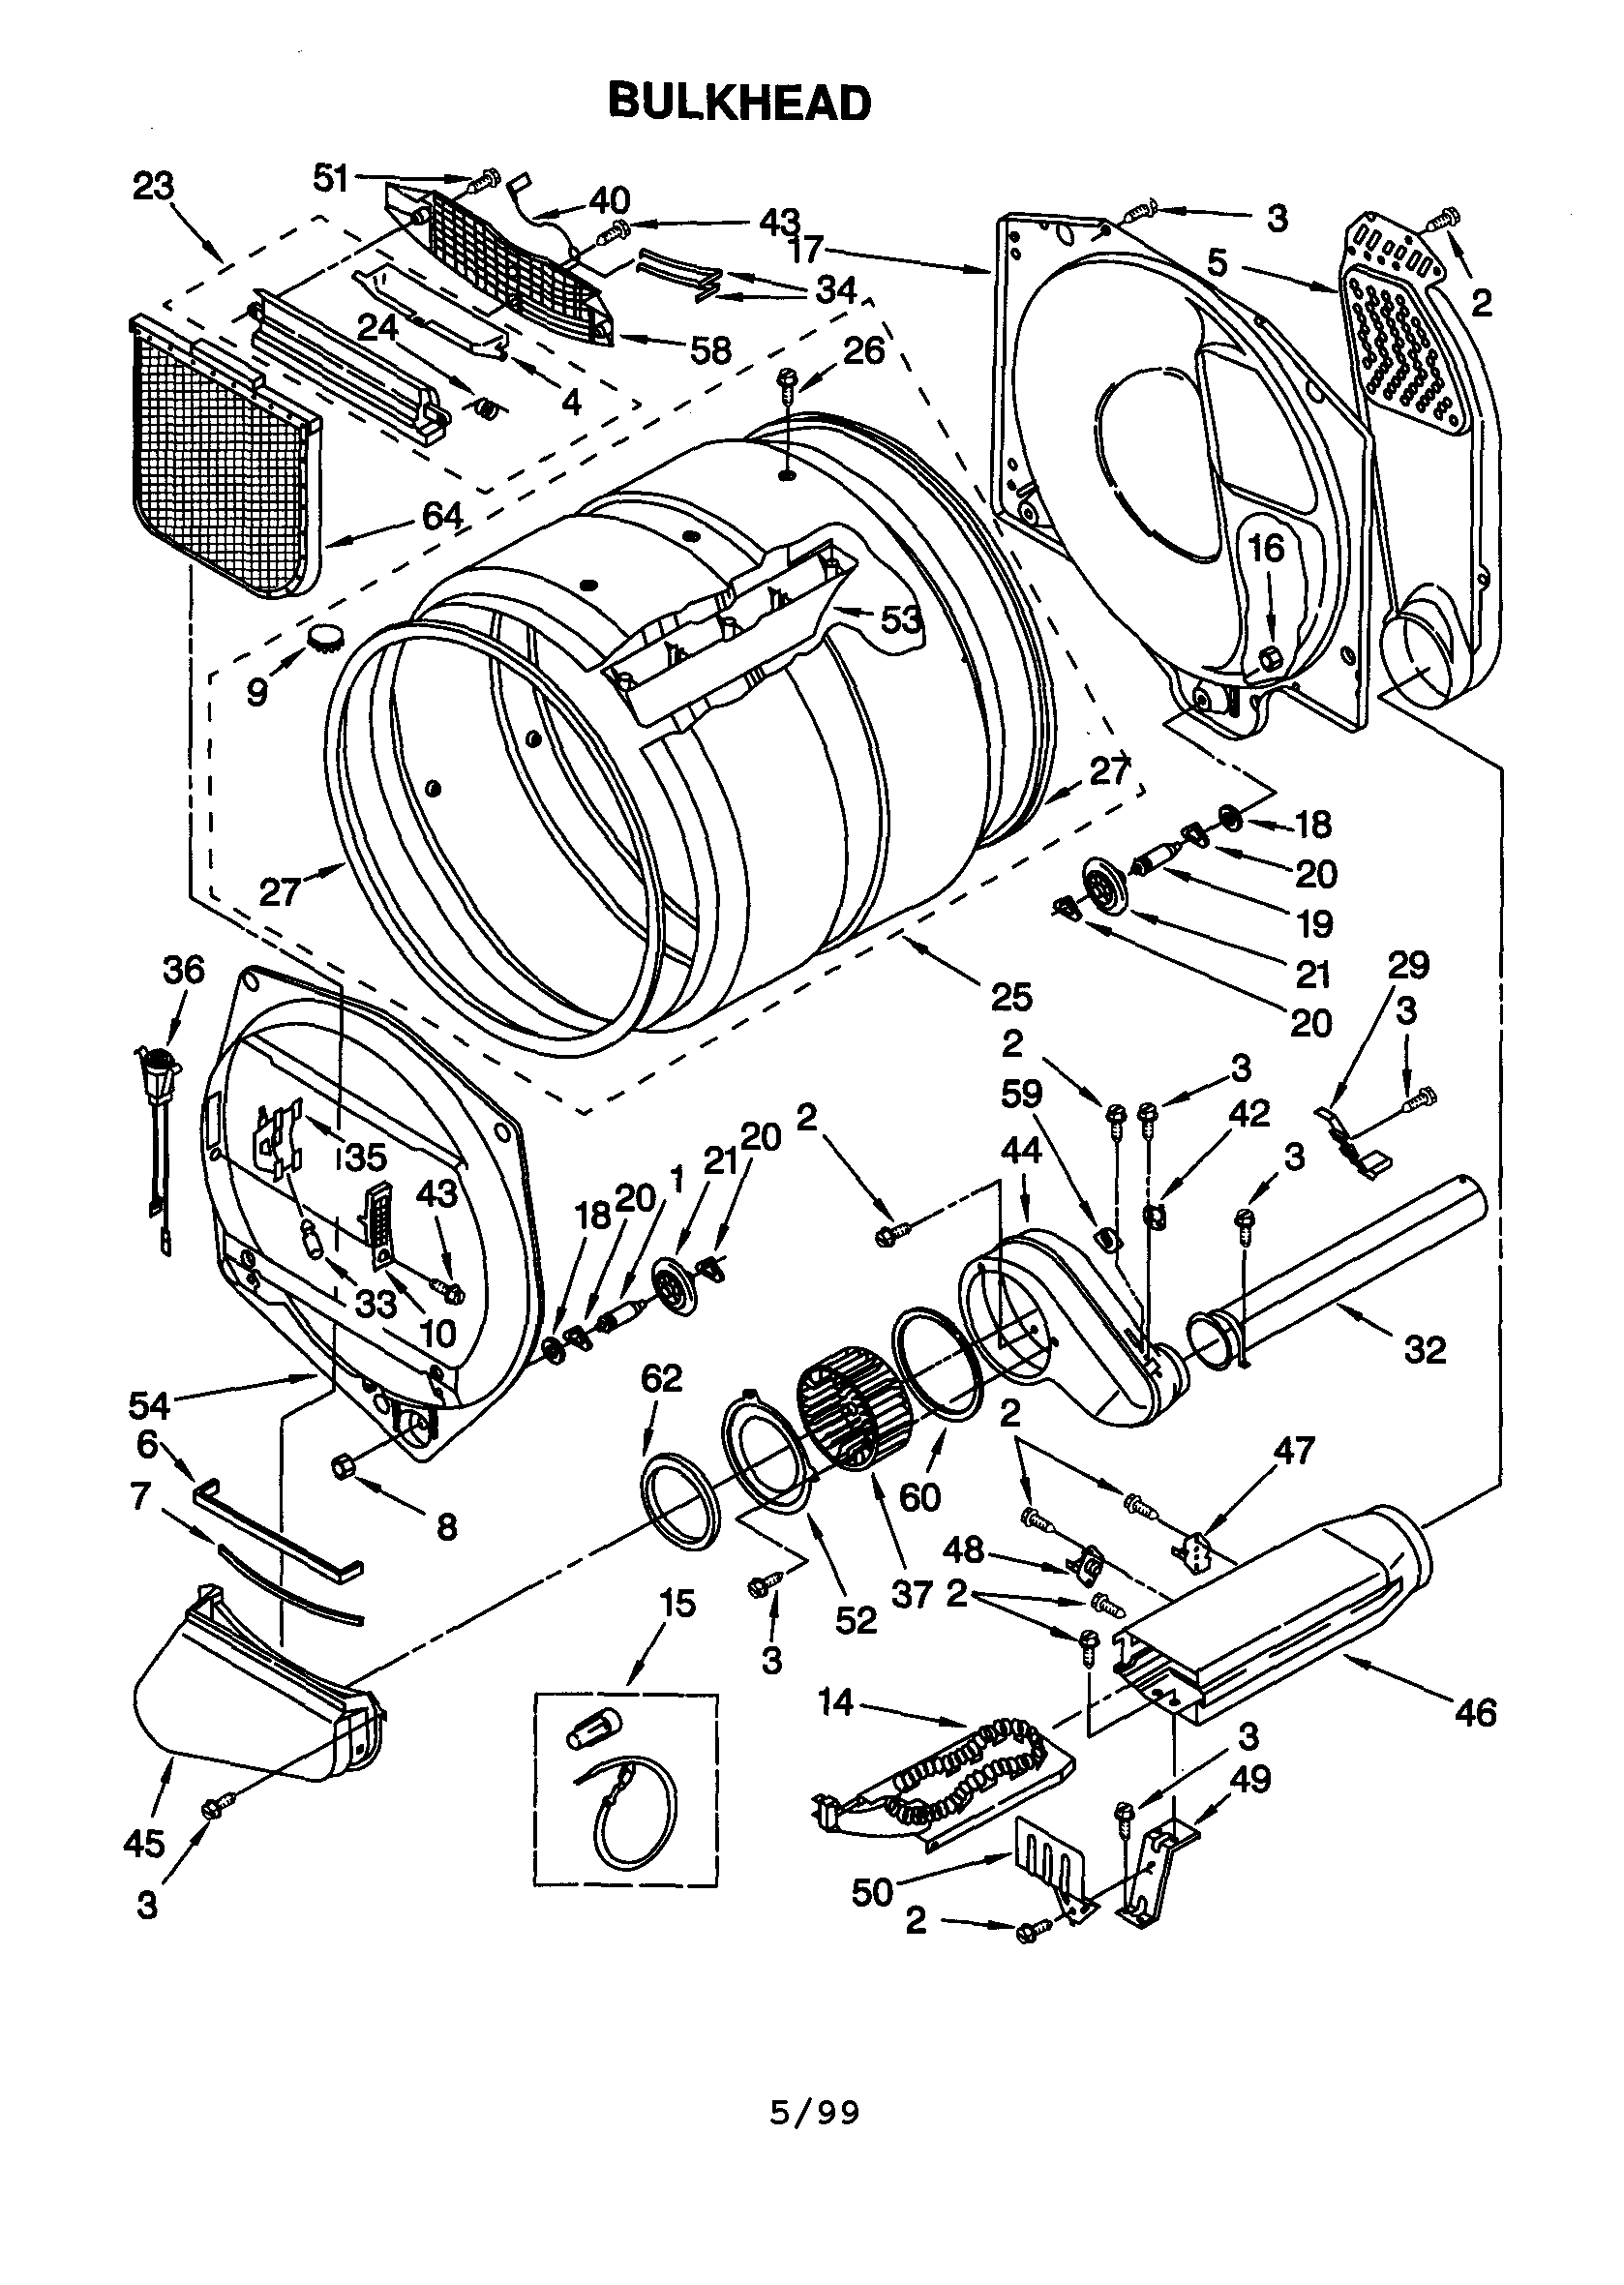 kenmore 90 series model 110 60912990 parts diagram gasgas dryer schematic wiring diagram 500